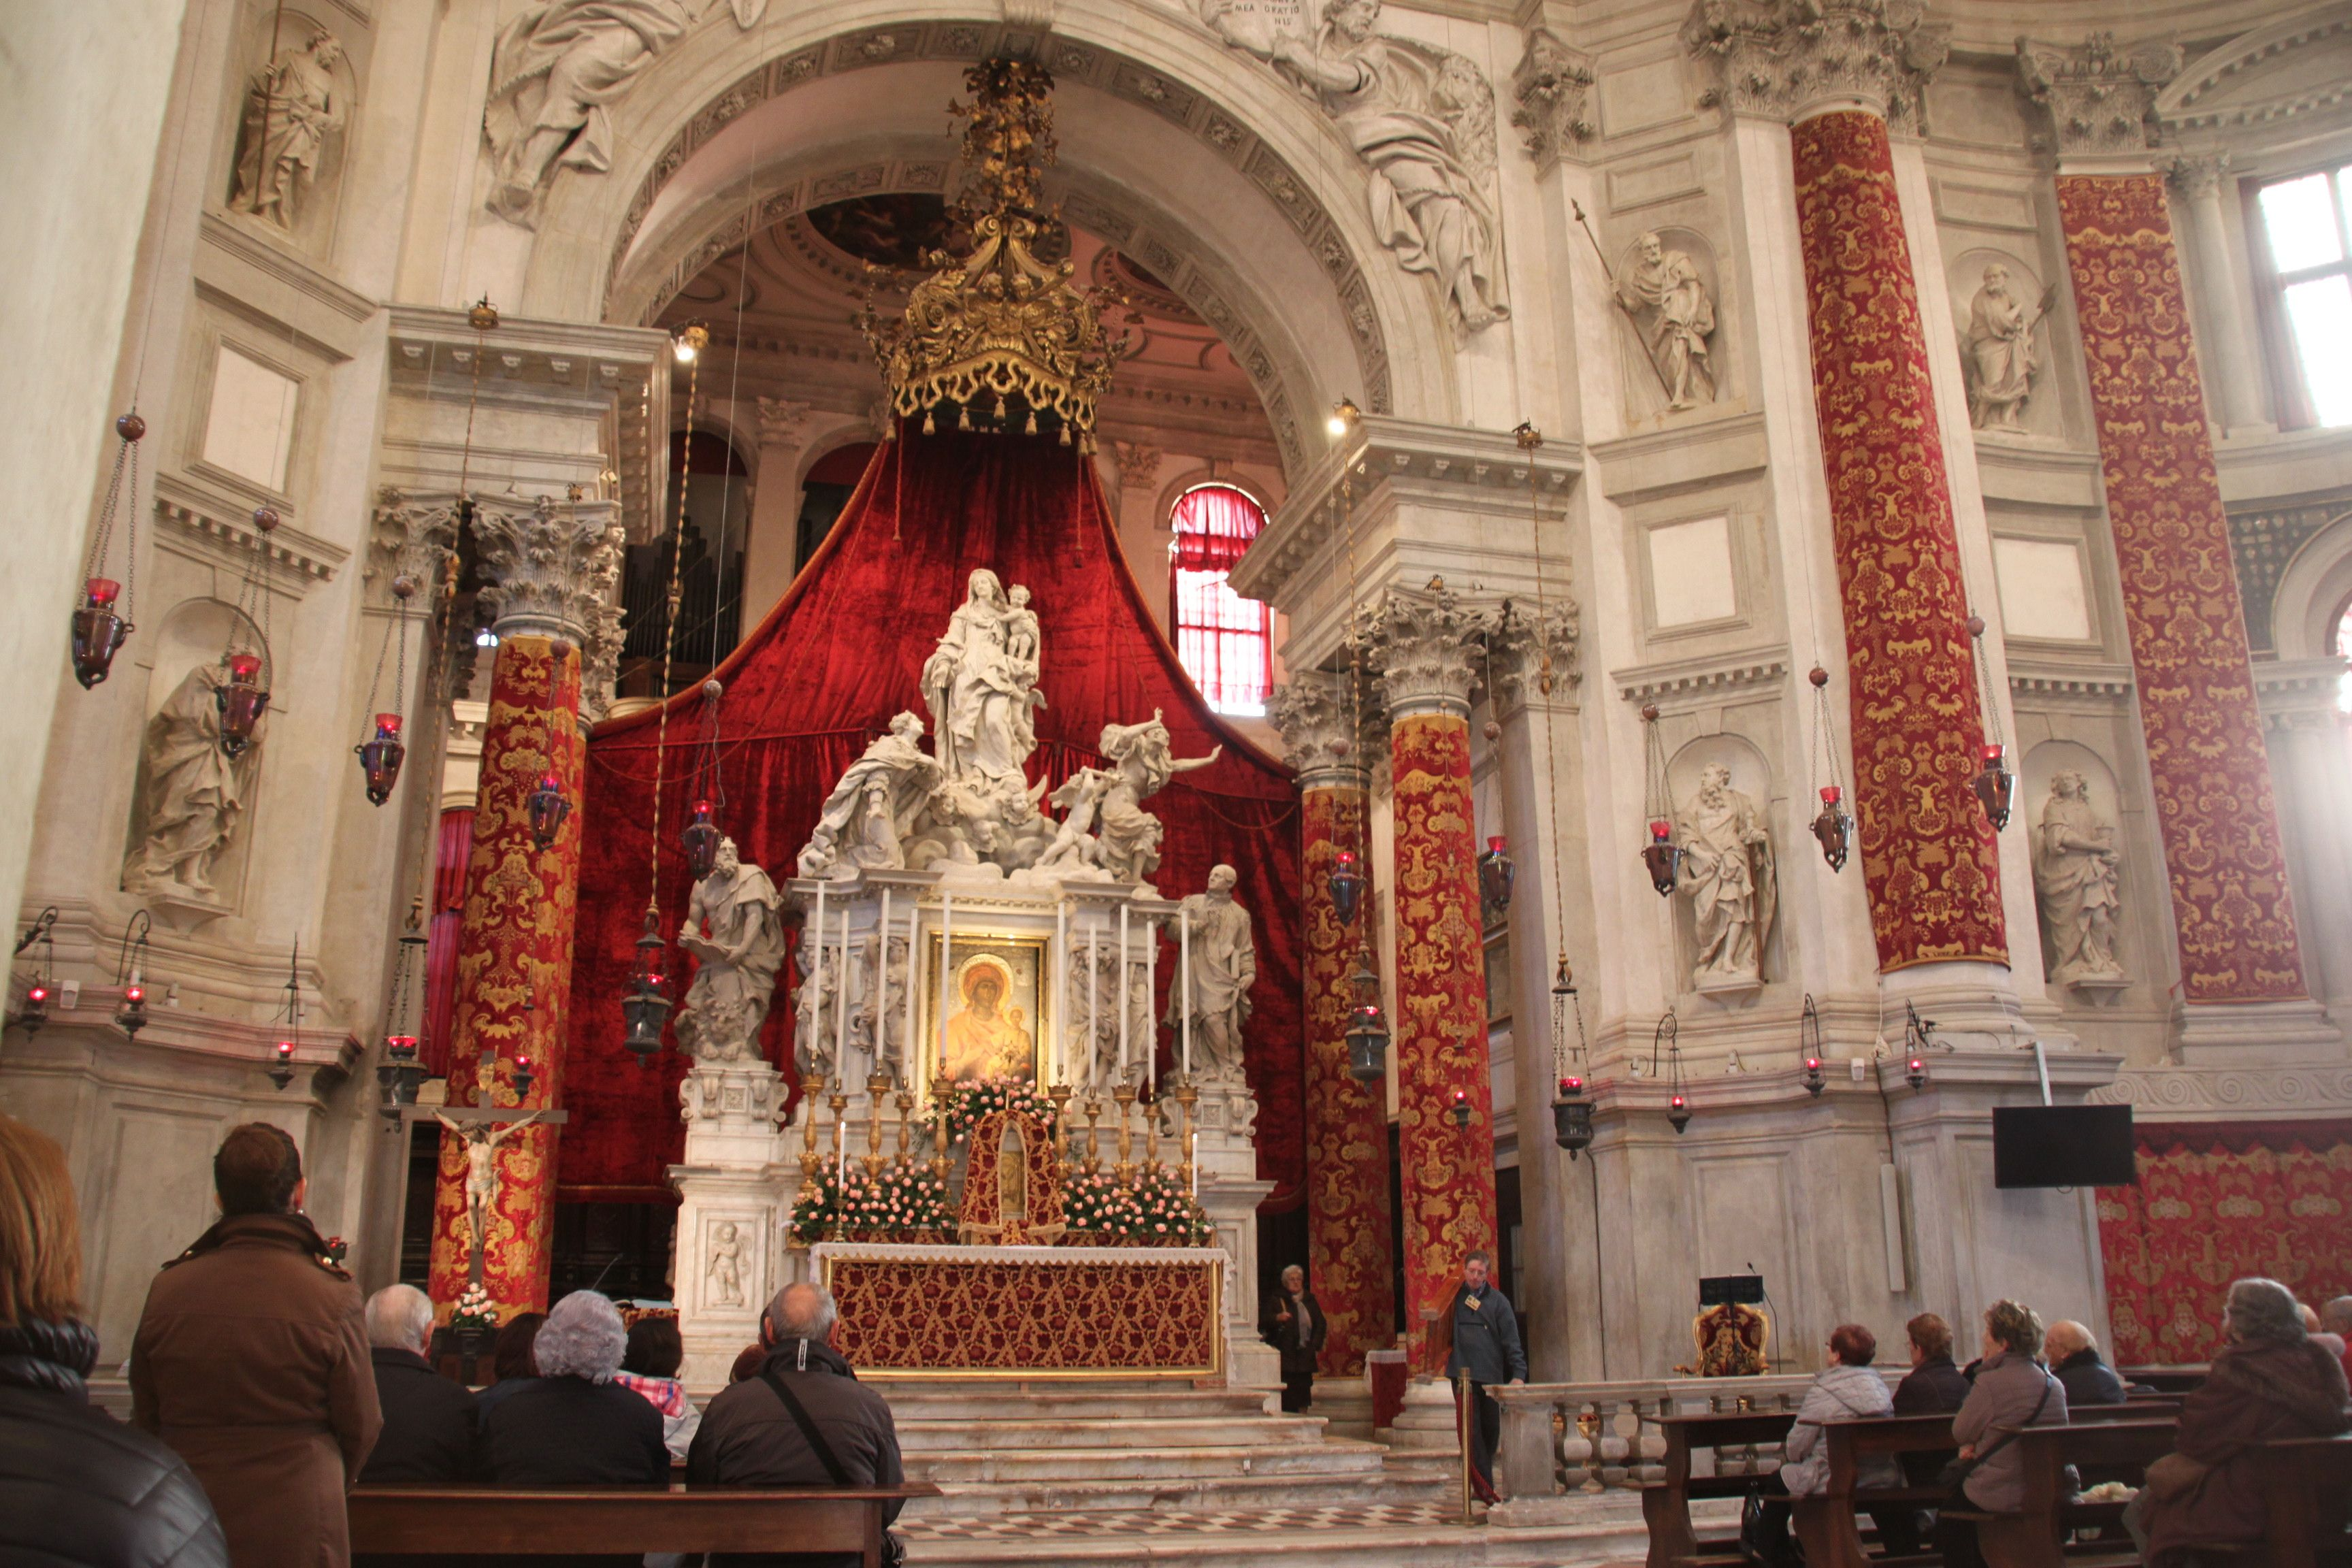 The high altar of the church of the Madonna della Salute with the golden icon of the Madonna at its centre